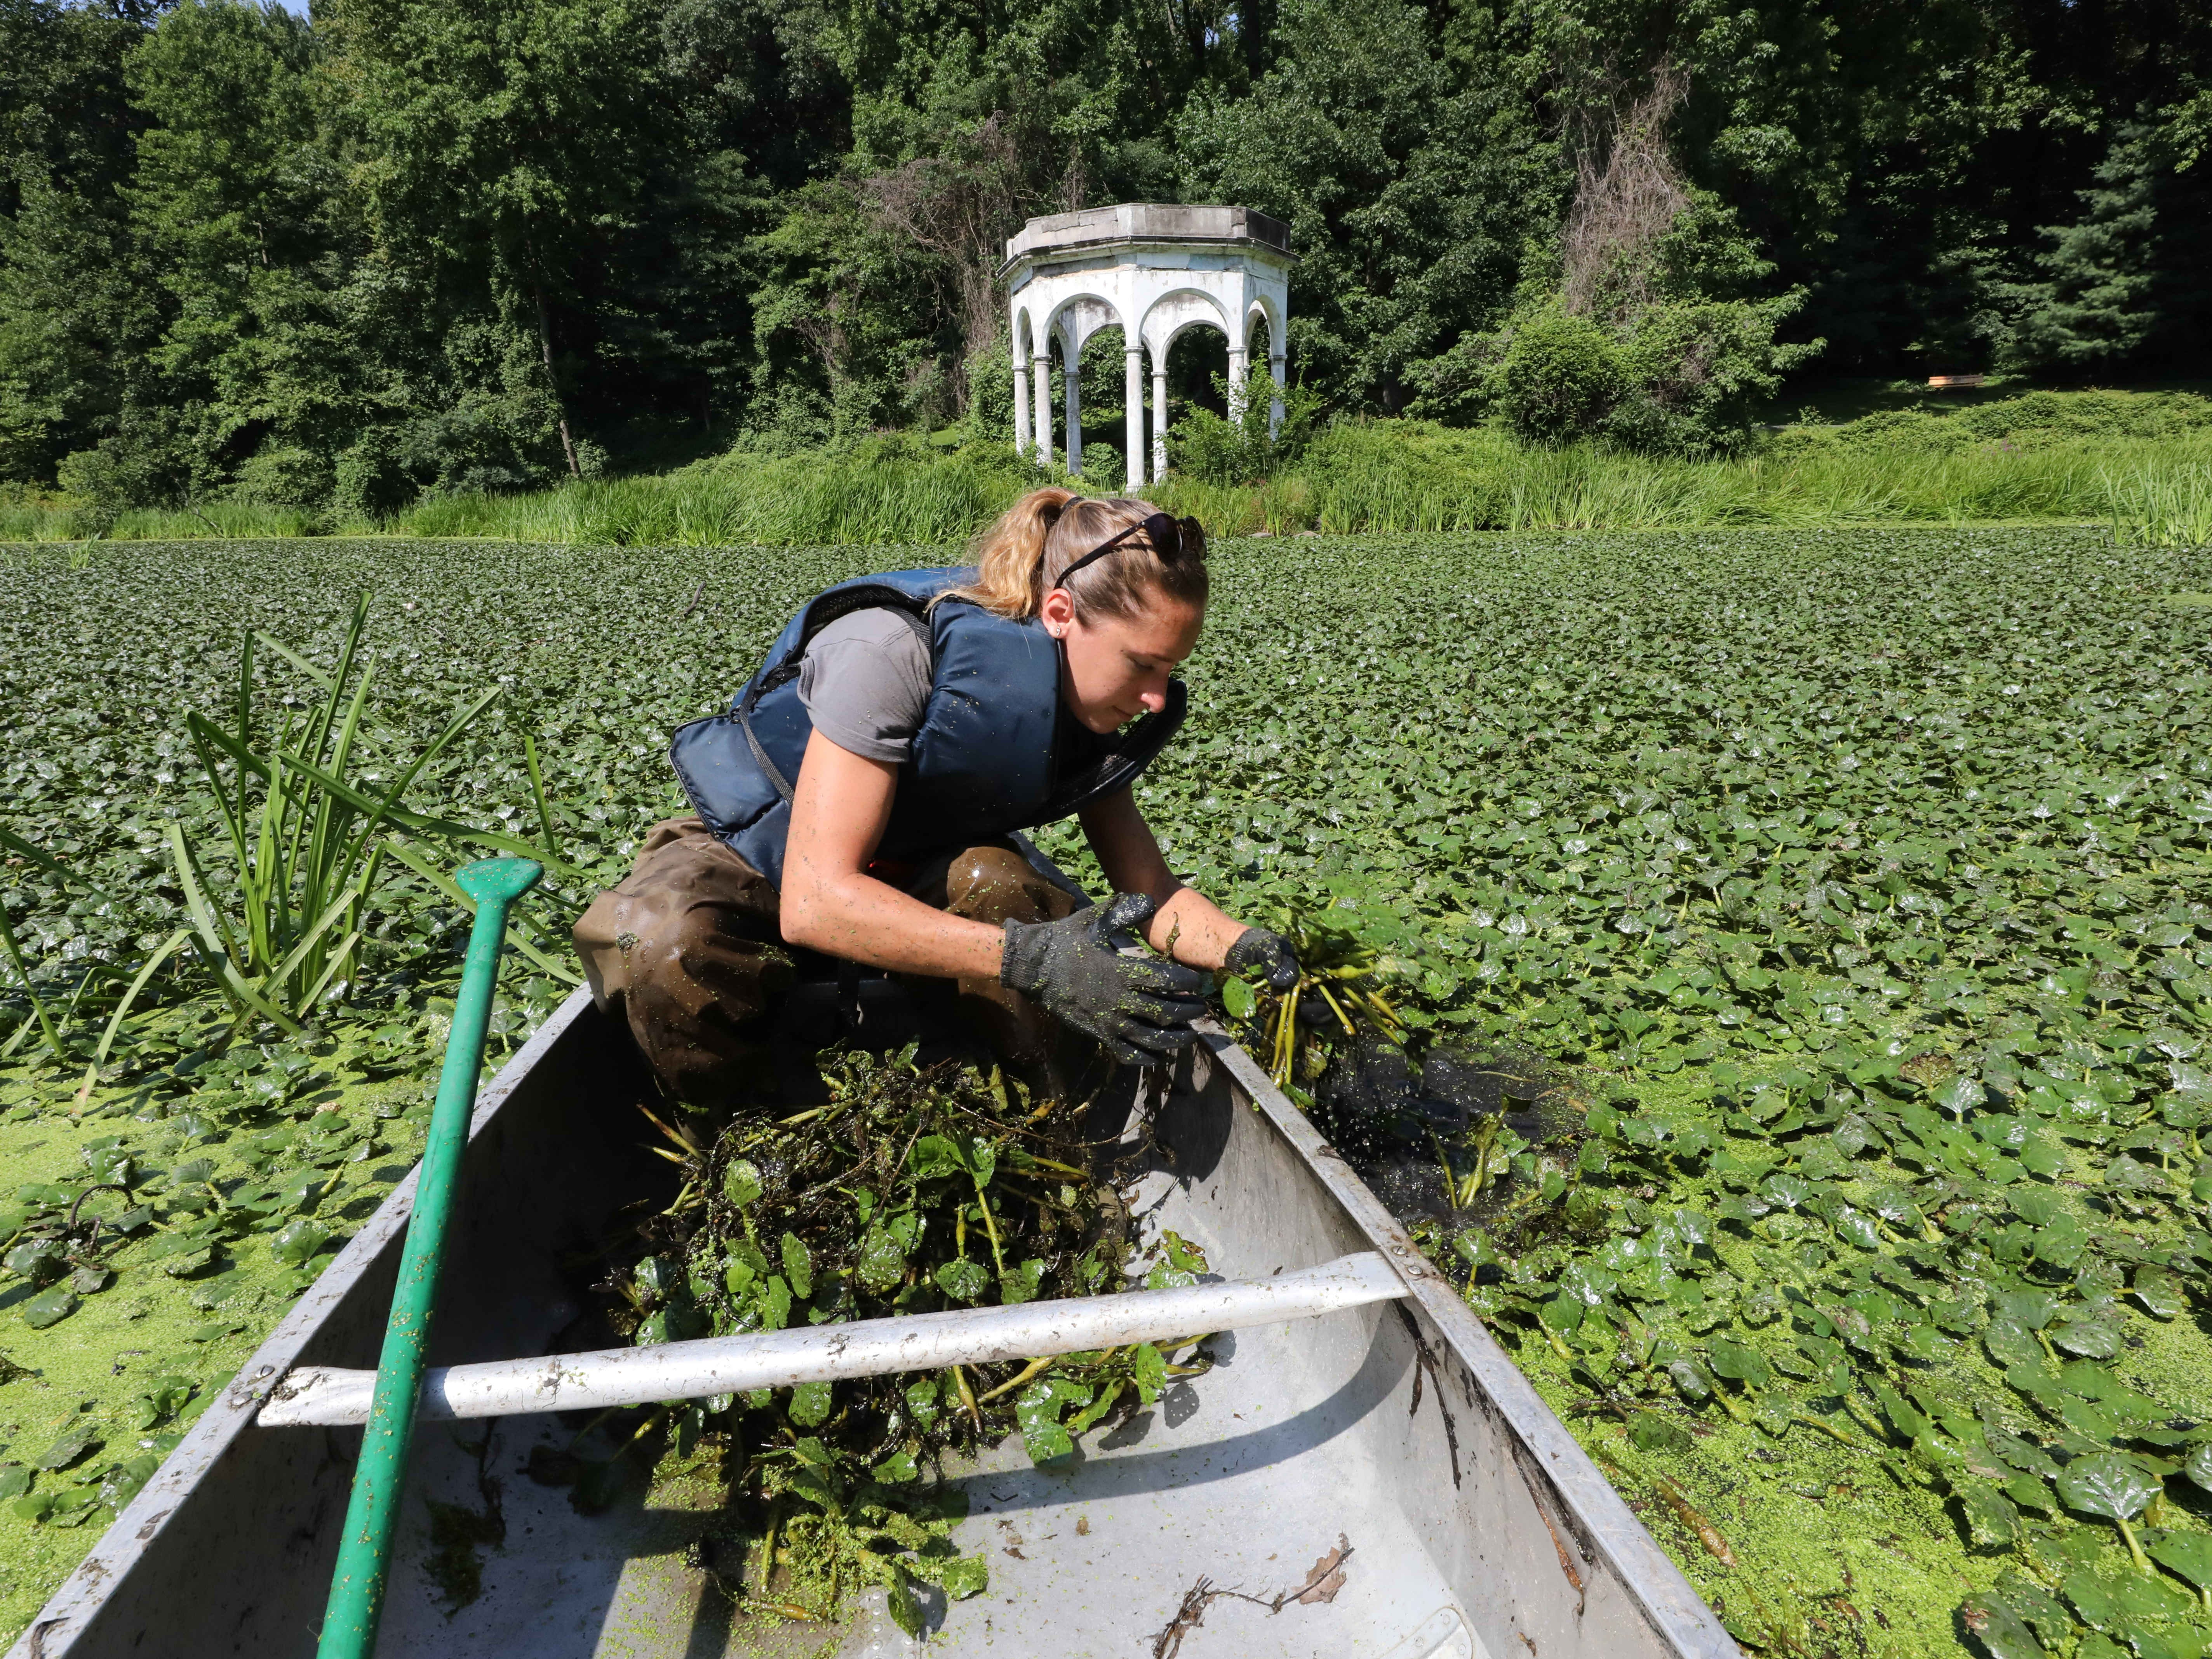 Erin Cordiner, the volunteer coordinator with The Westchester Parks Foundation, scoops up some invasive water chestnut plants into her canoe at Tibbetts Brook Park in Yonkers, Aug. 8, 2018.